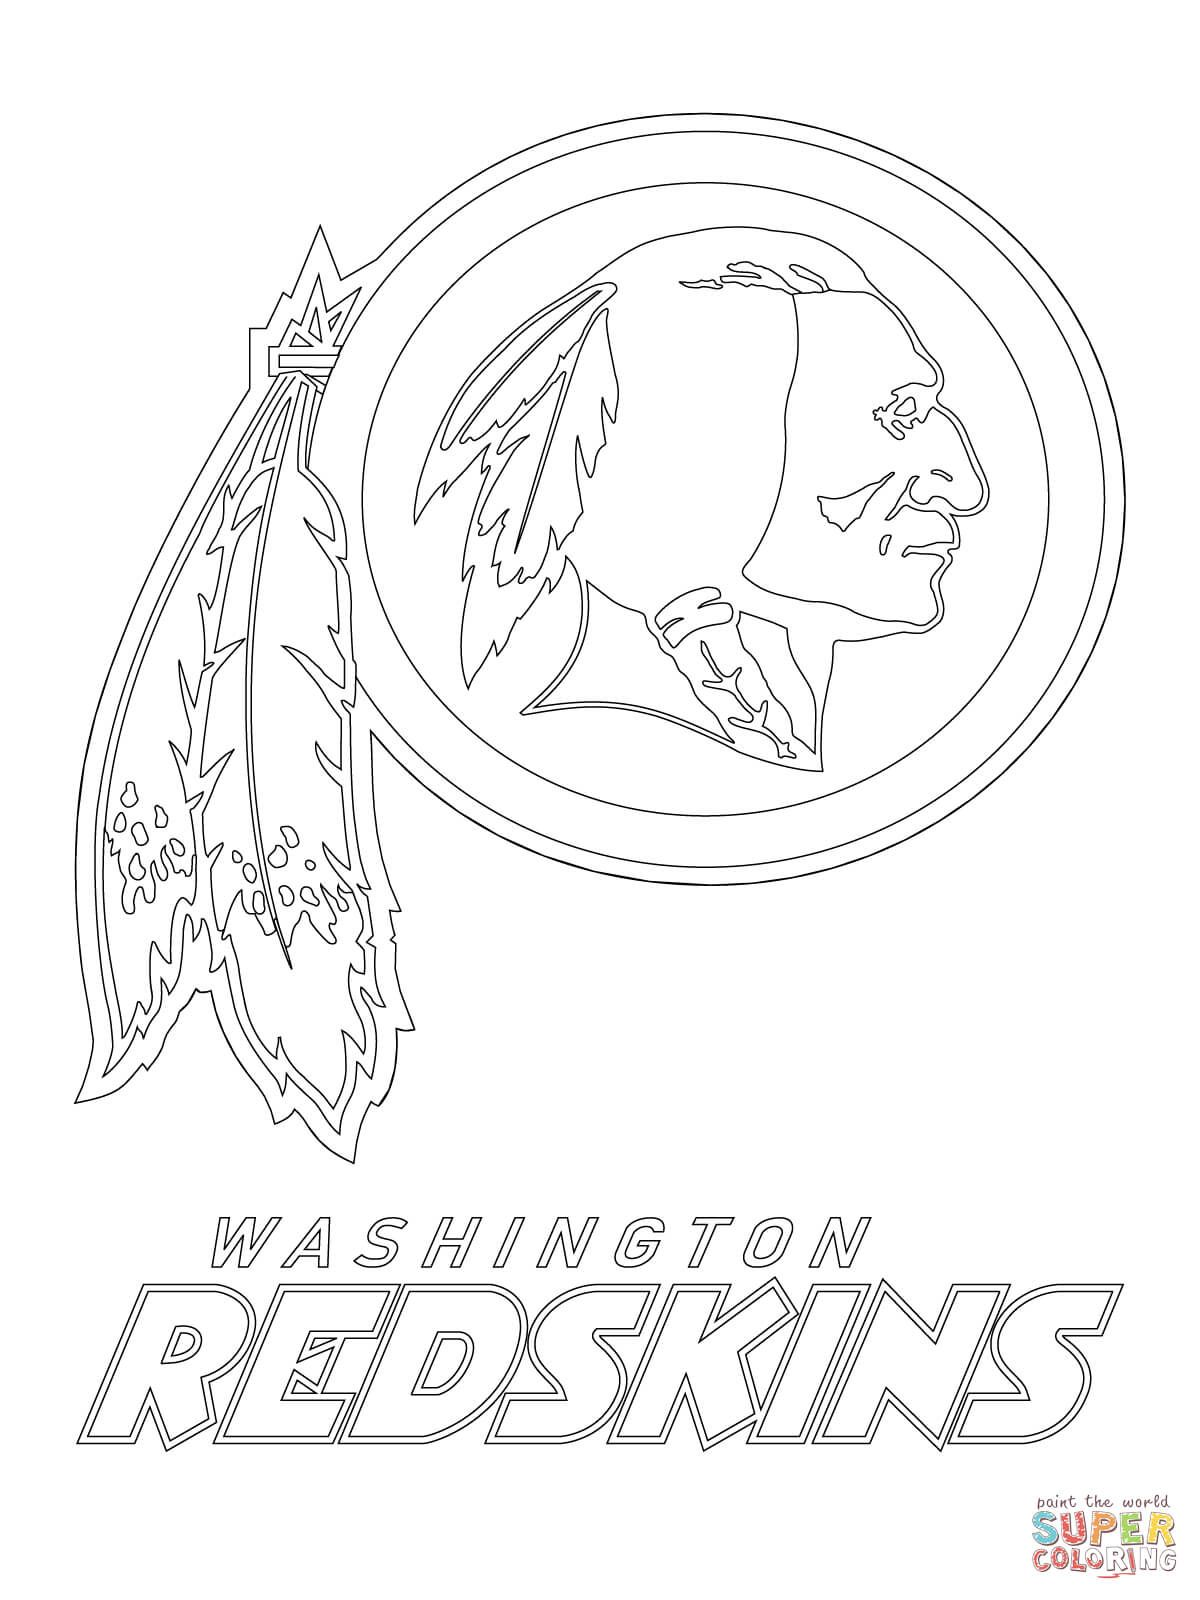 Pin On Washington Redskins Pastor